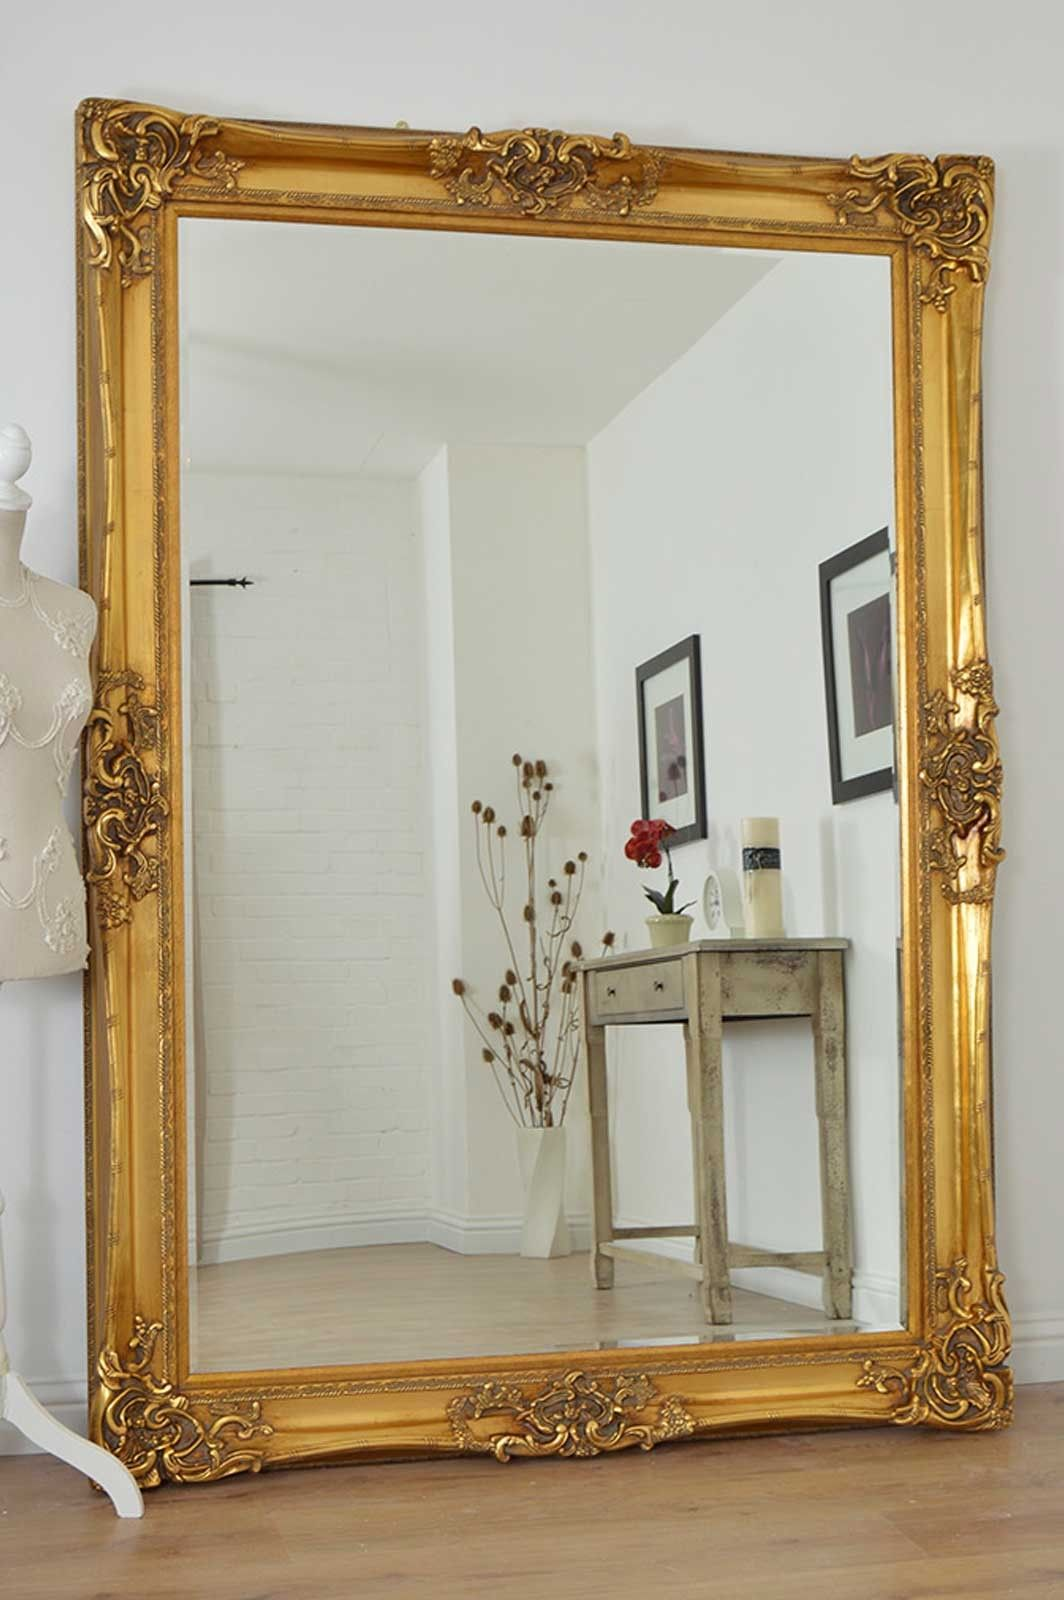 Large gold very ornate antique design wall mirror 7ft x for Large wall mirrors for sale